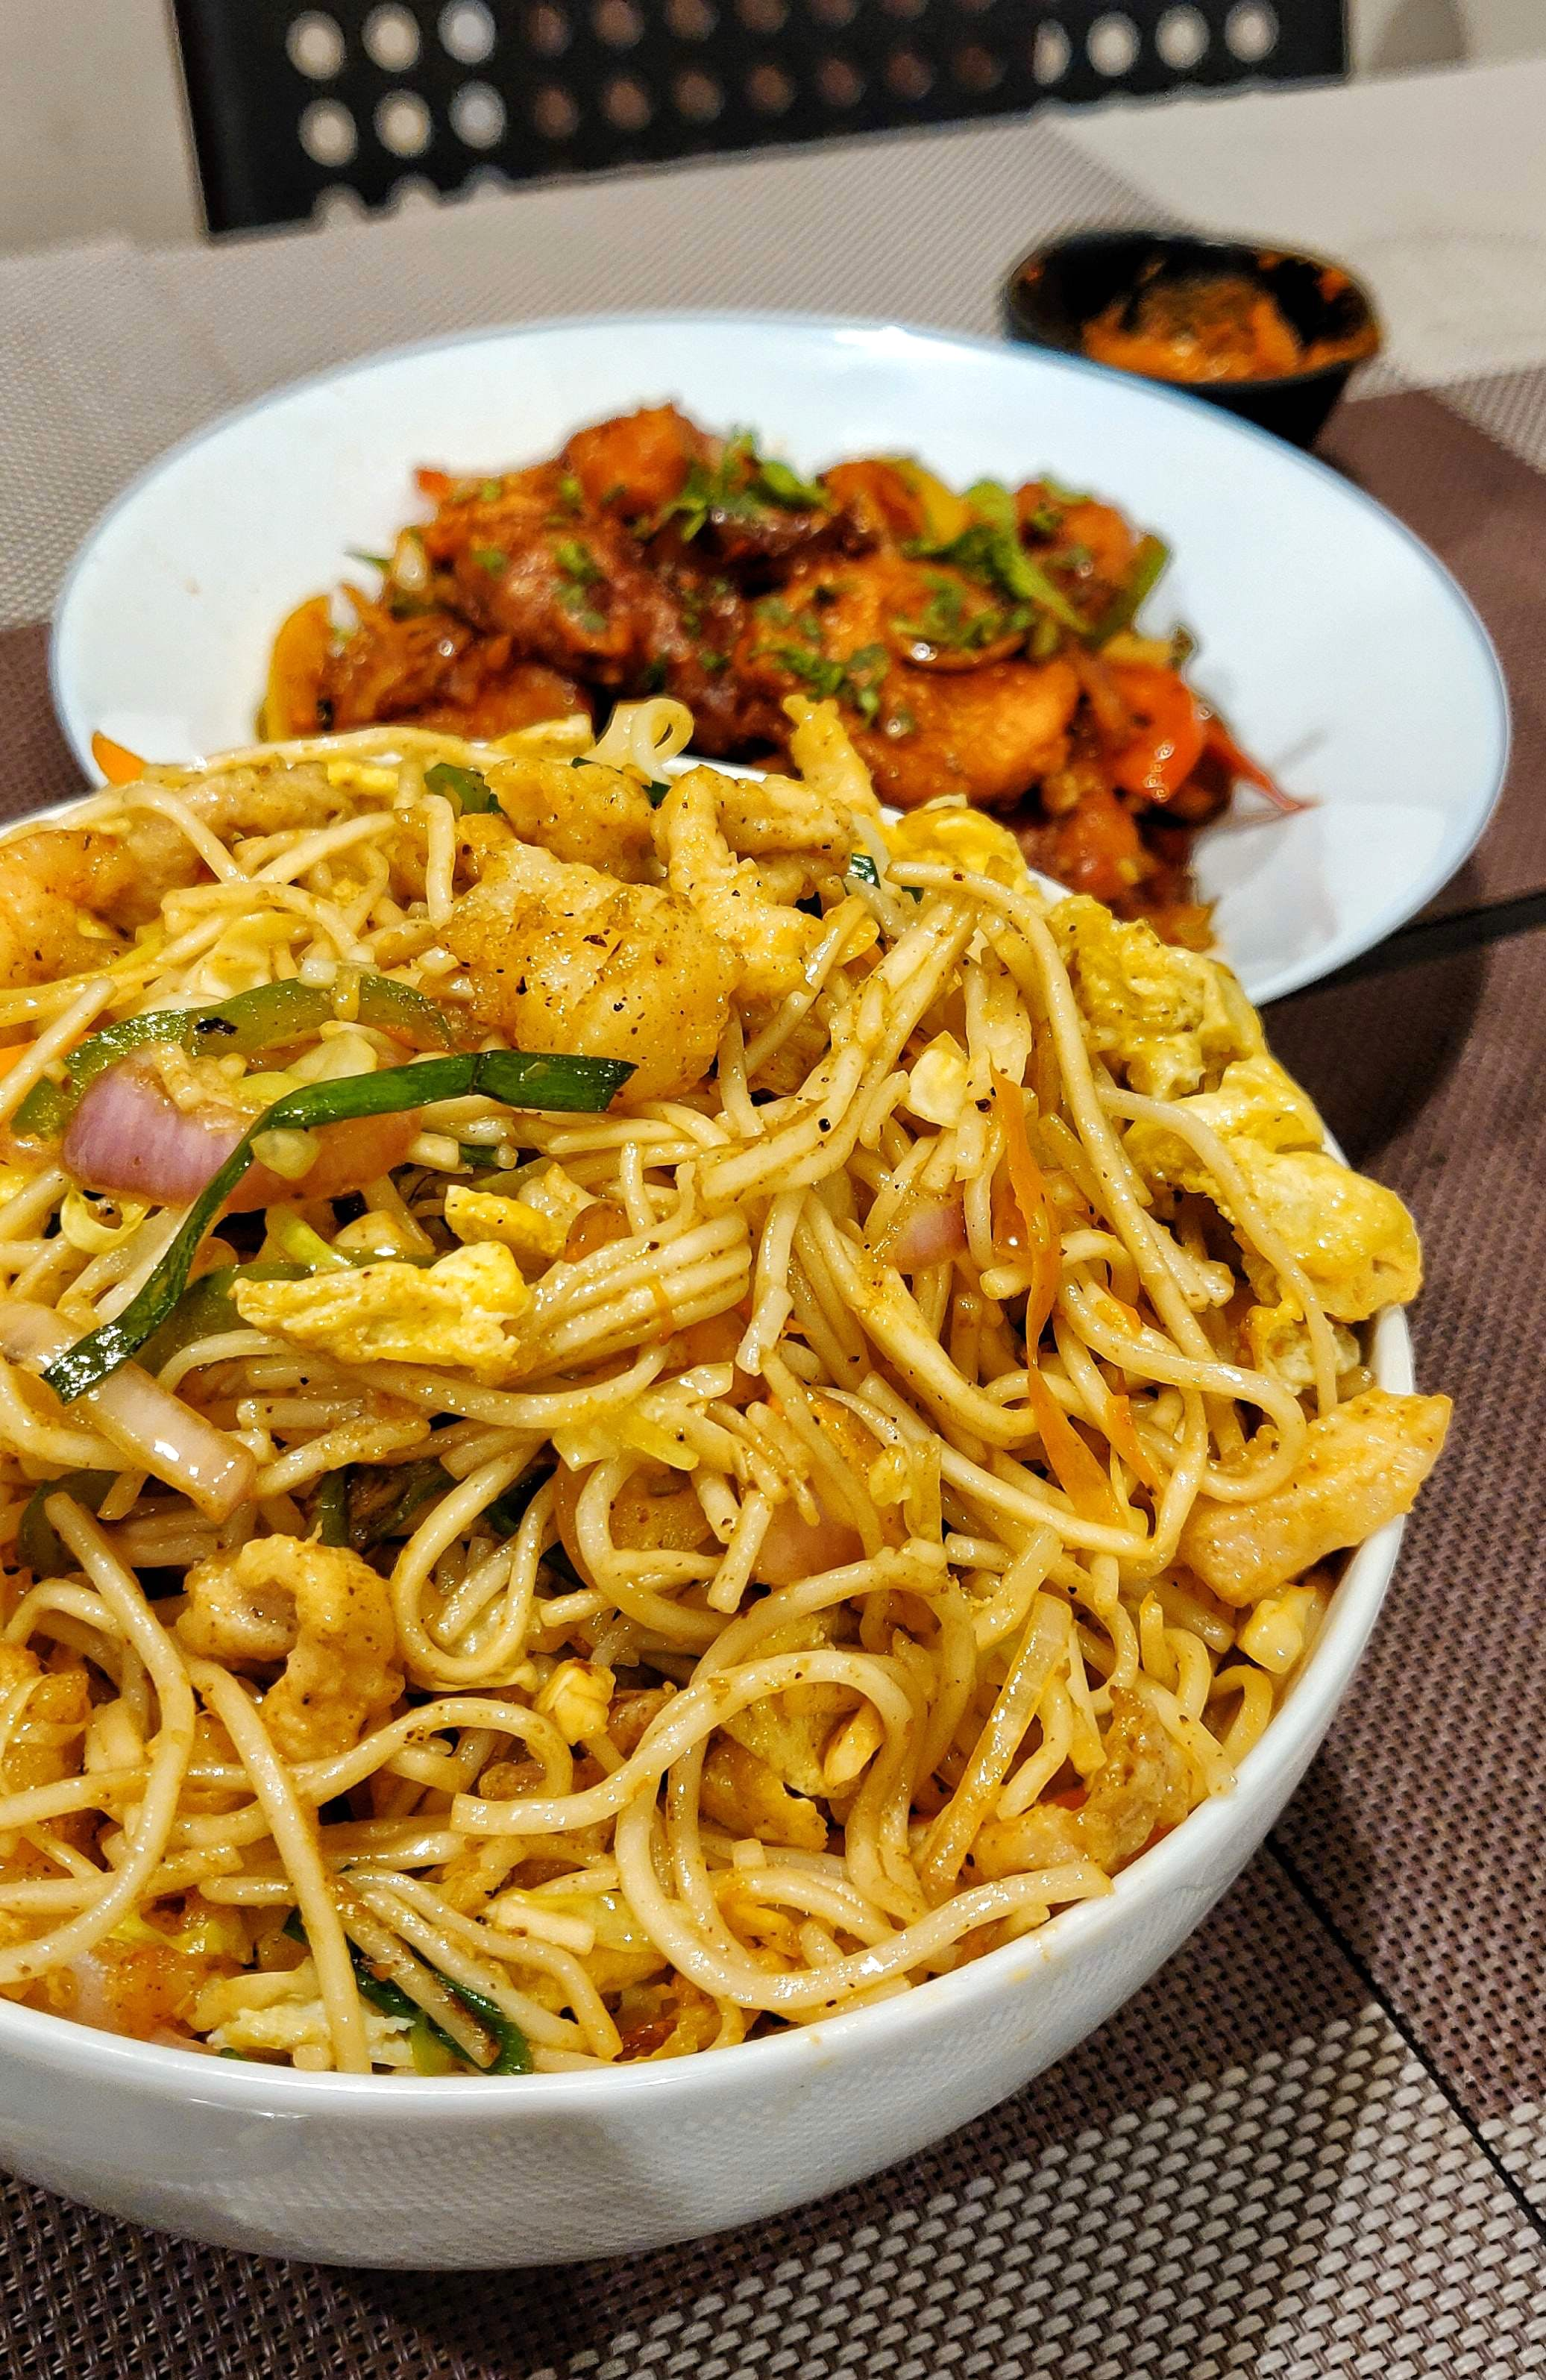 Dish,Food,Cuisine,Spaghetti,Noodle,Ingredient,Fried noodles,Capellini,Hot dry noodles,Lo mein